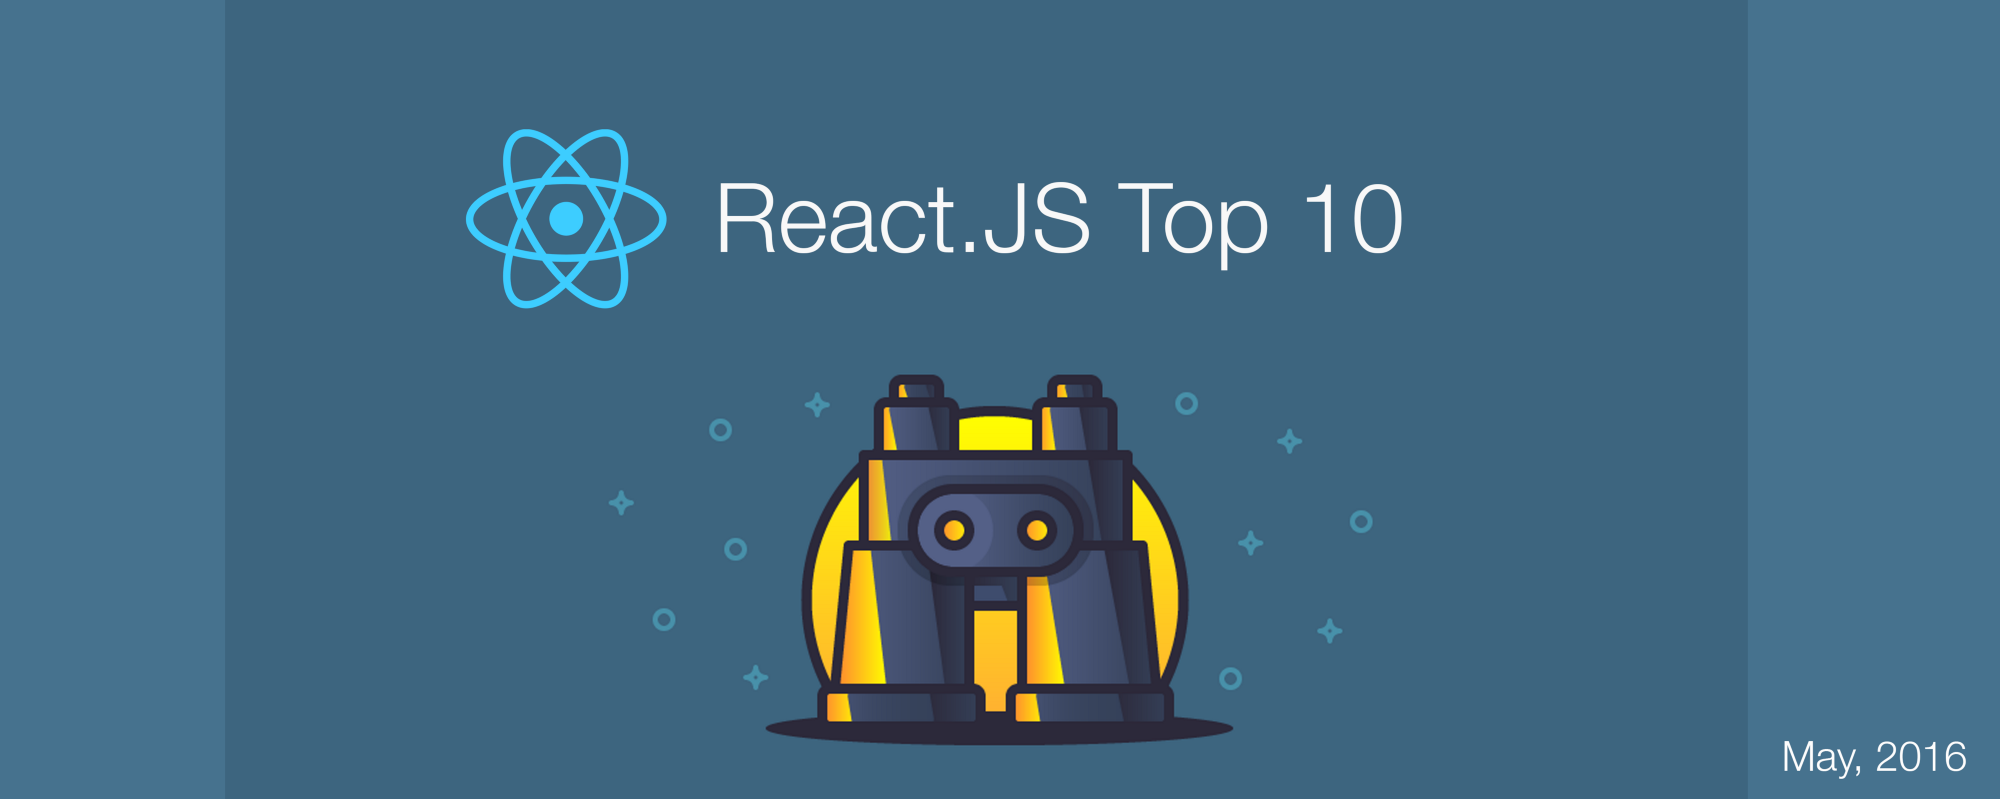 what is a good recent reactjs tutorial for beginners